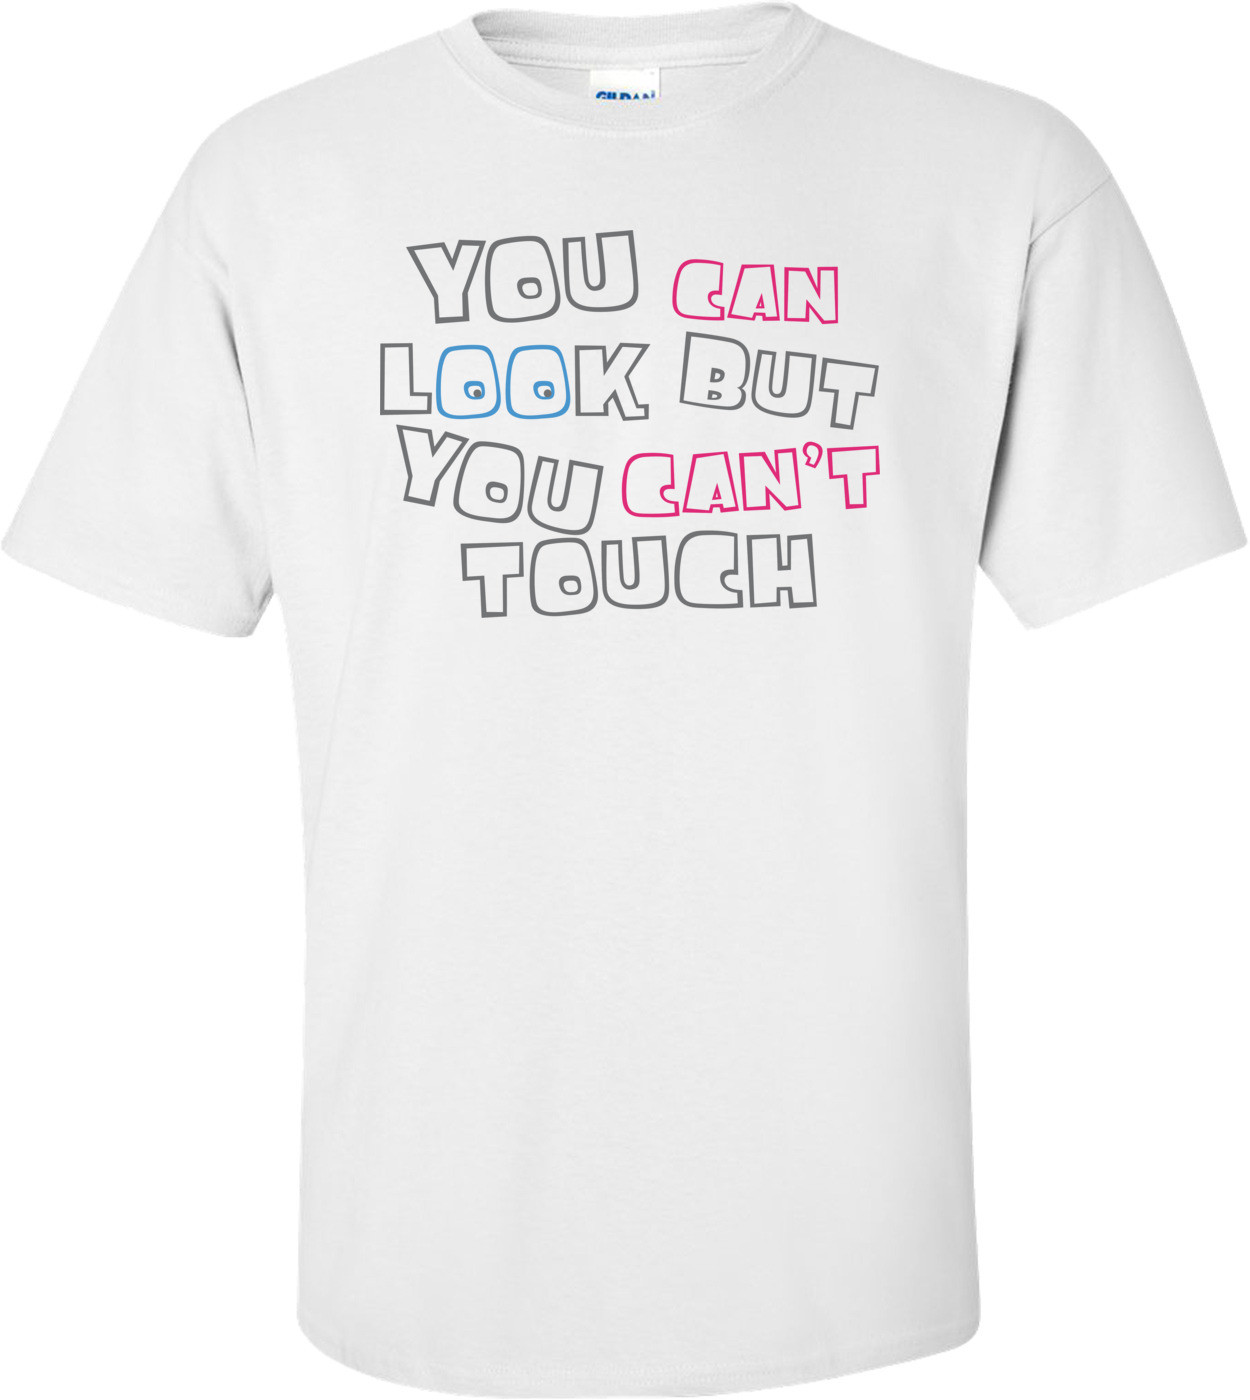 You Can Look But You Can't Touch T-shirt